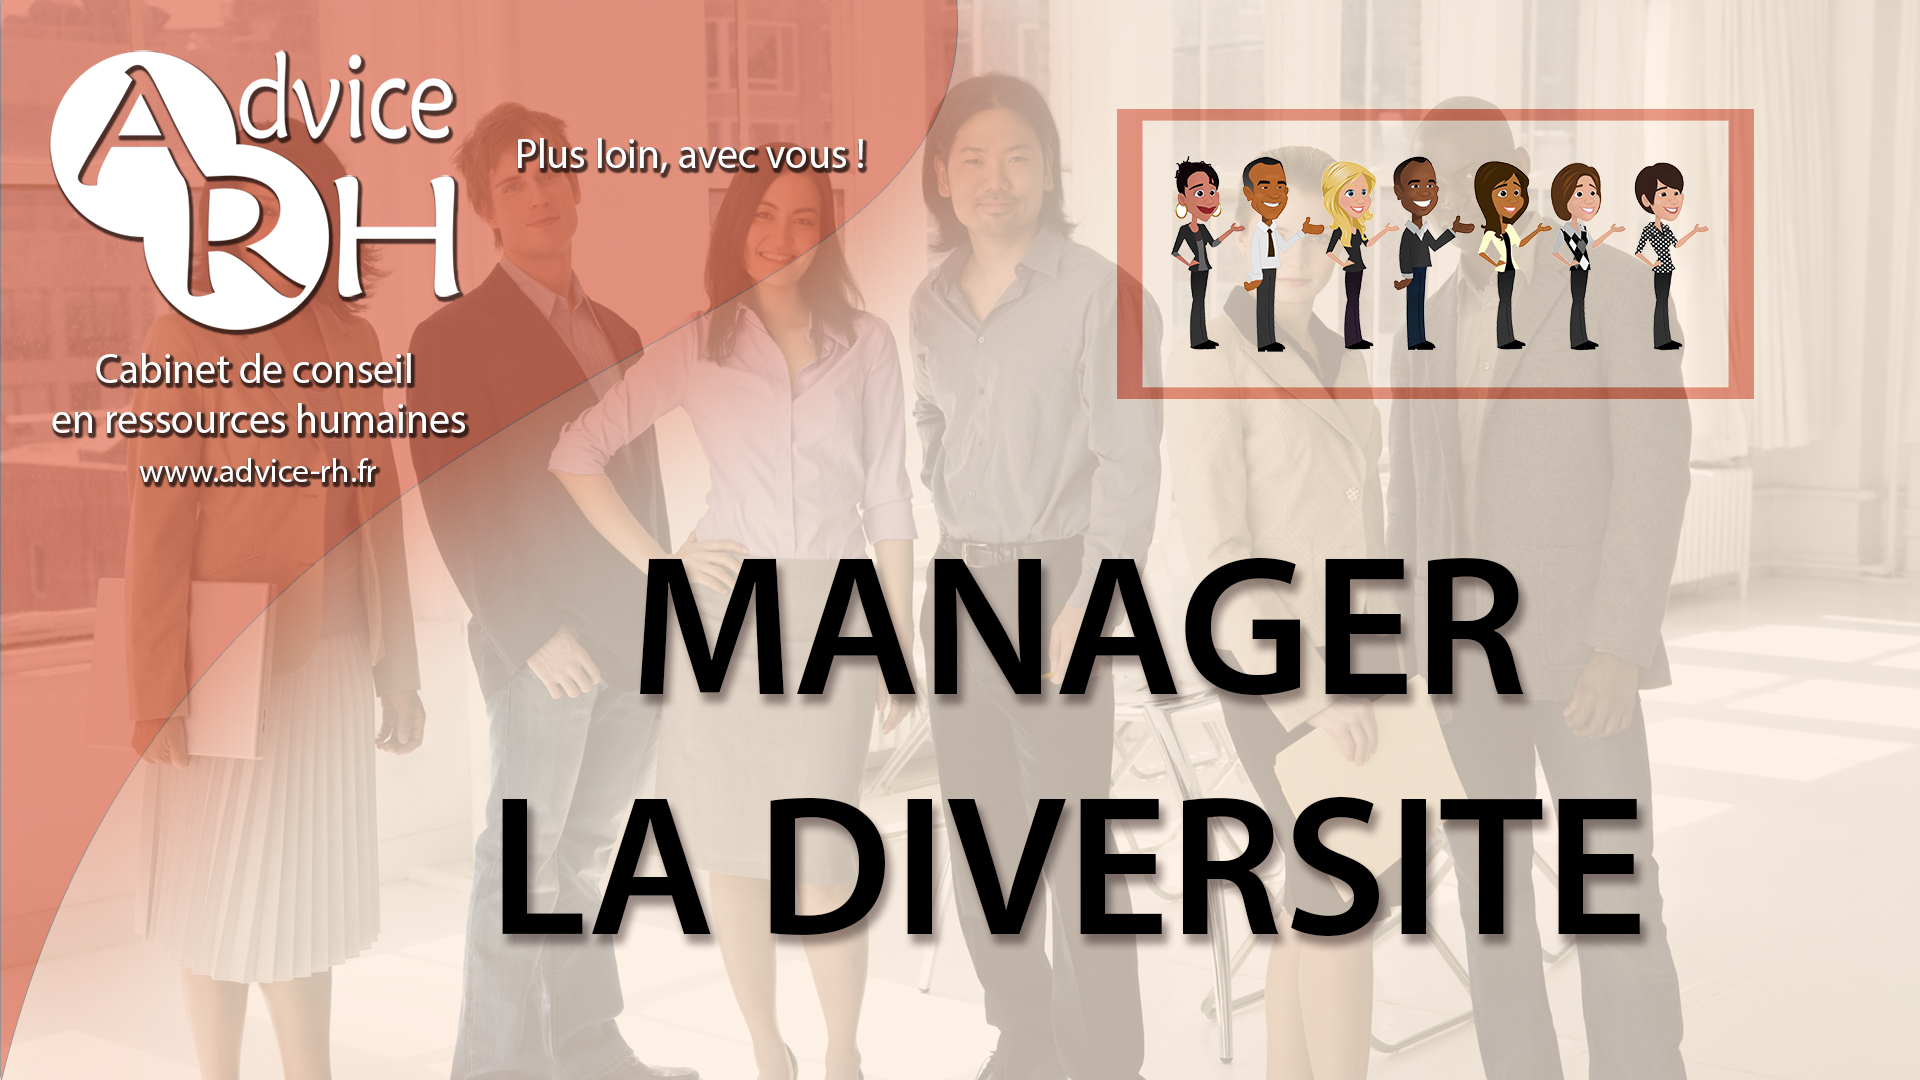 Advice RH - Manager la diversité